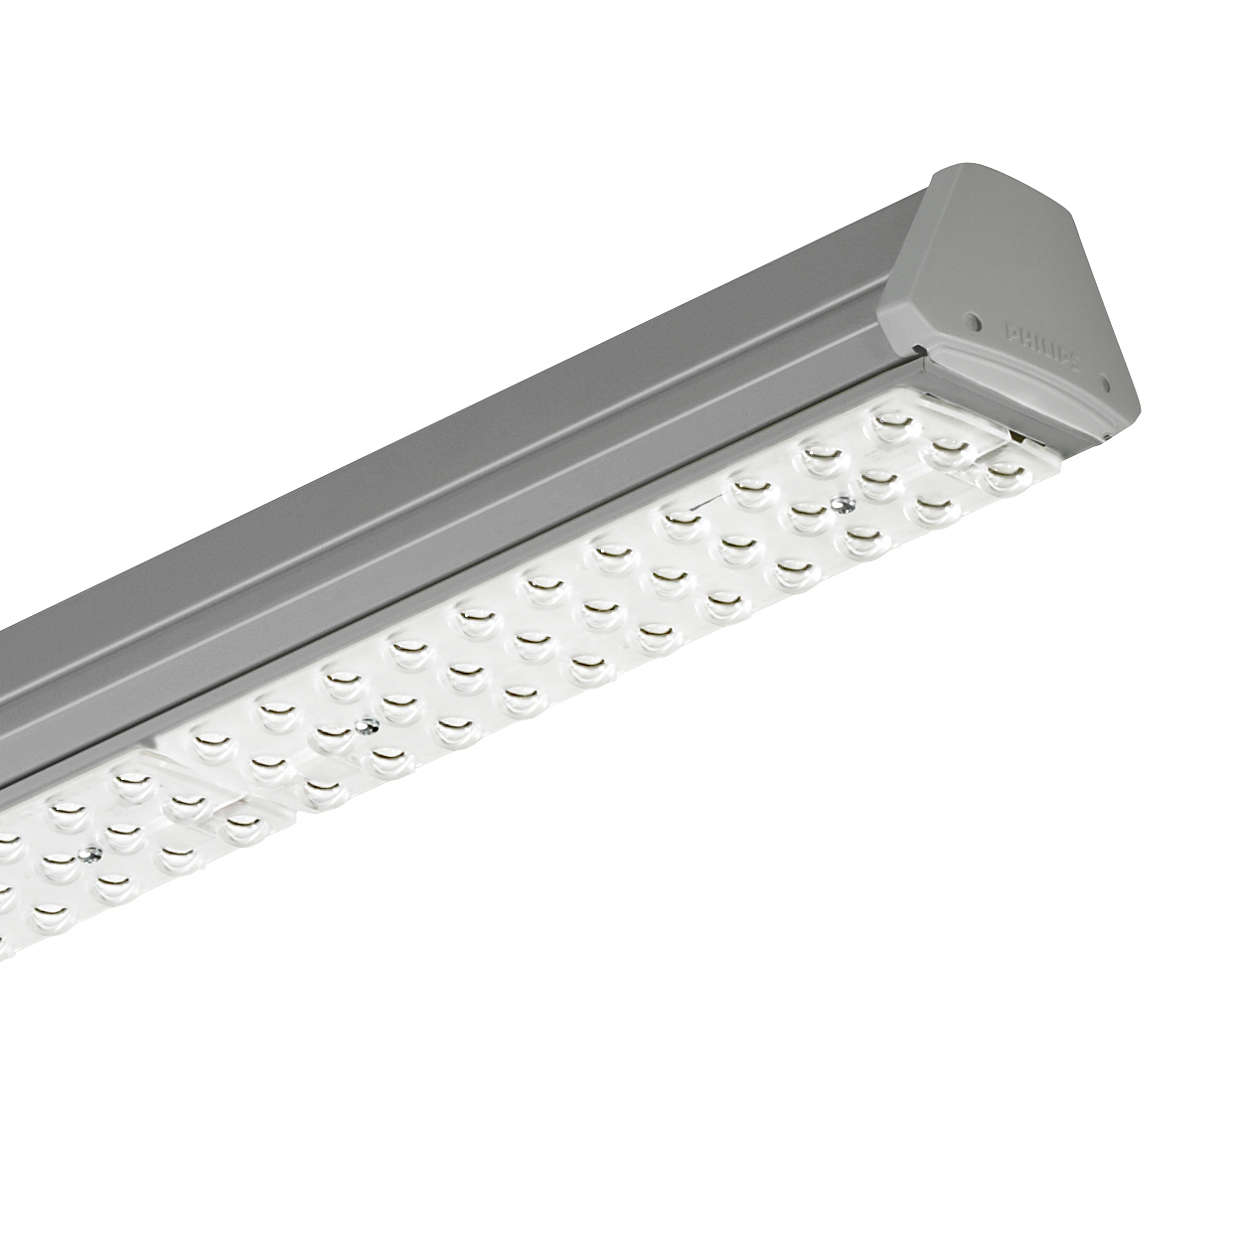 Maxos LED General Lighting – innovative, flexible solution delivers ideal light output